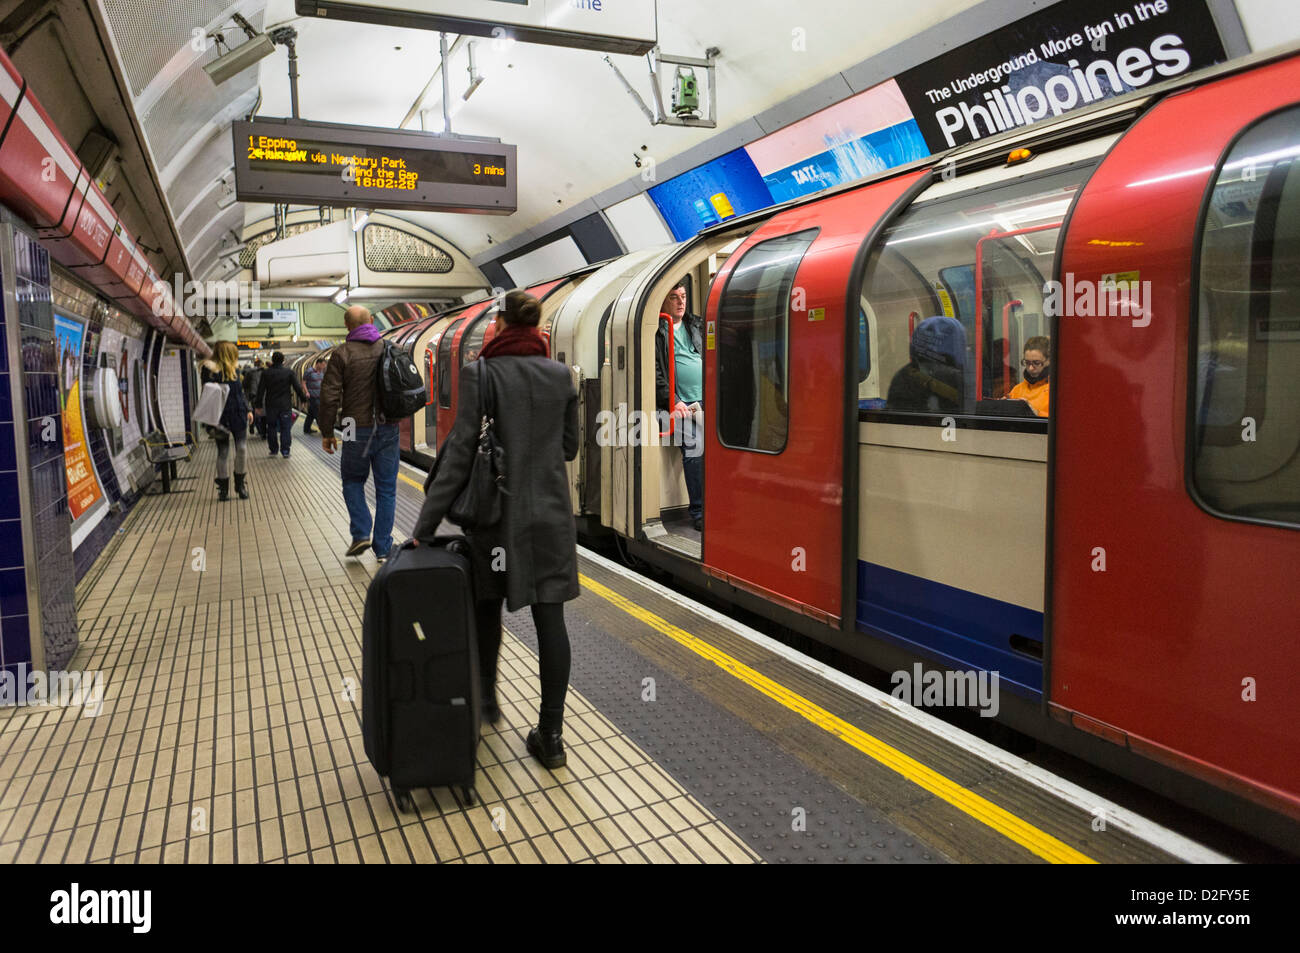 London Underground tube platform, England, UK - Tube train and passengers - Stock Image